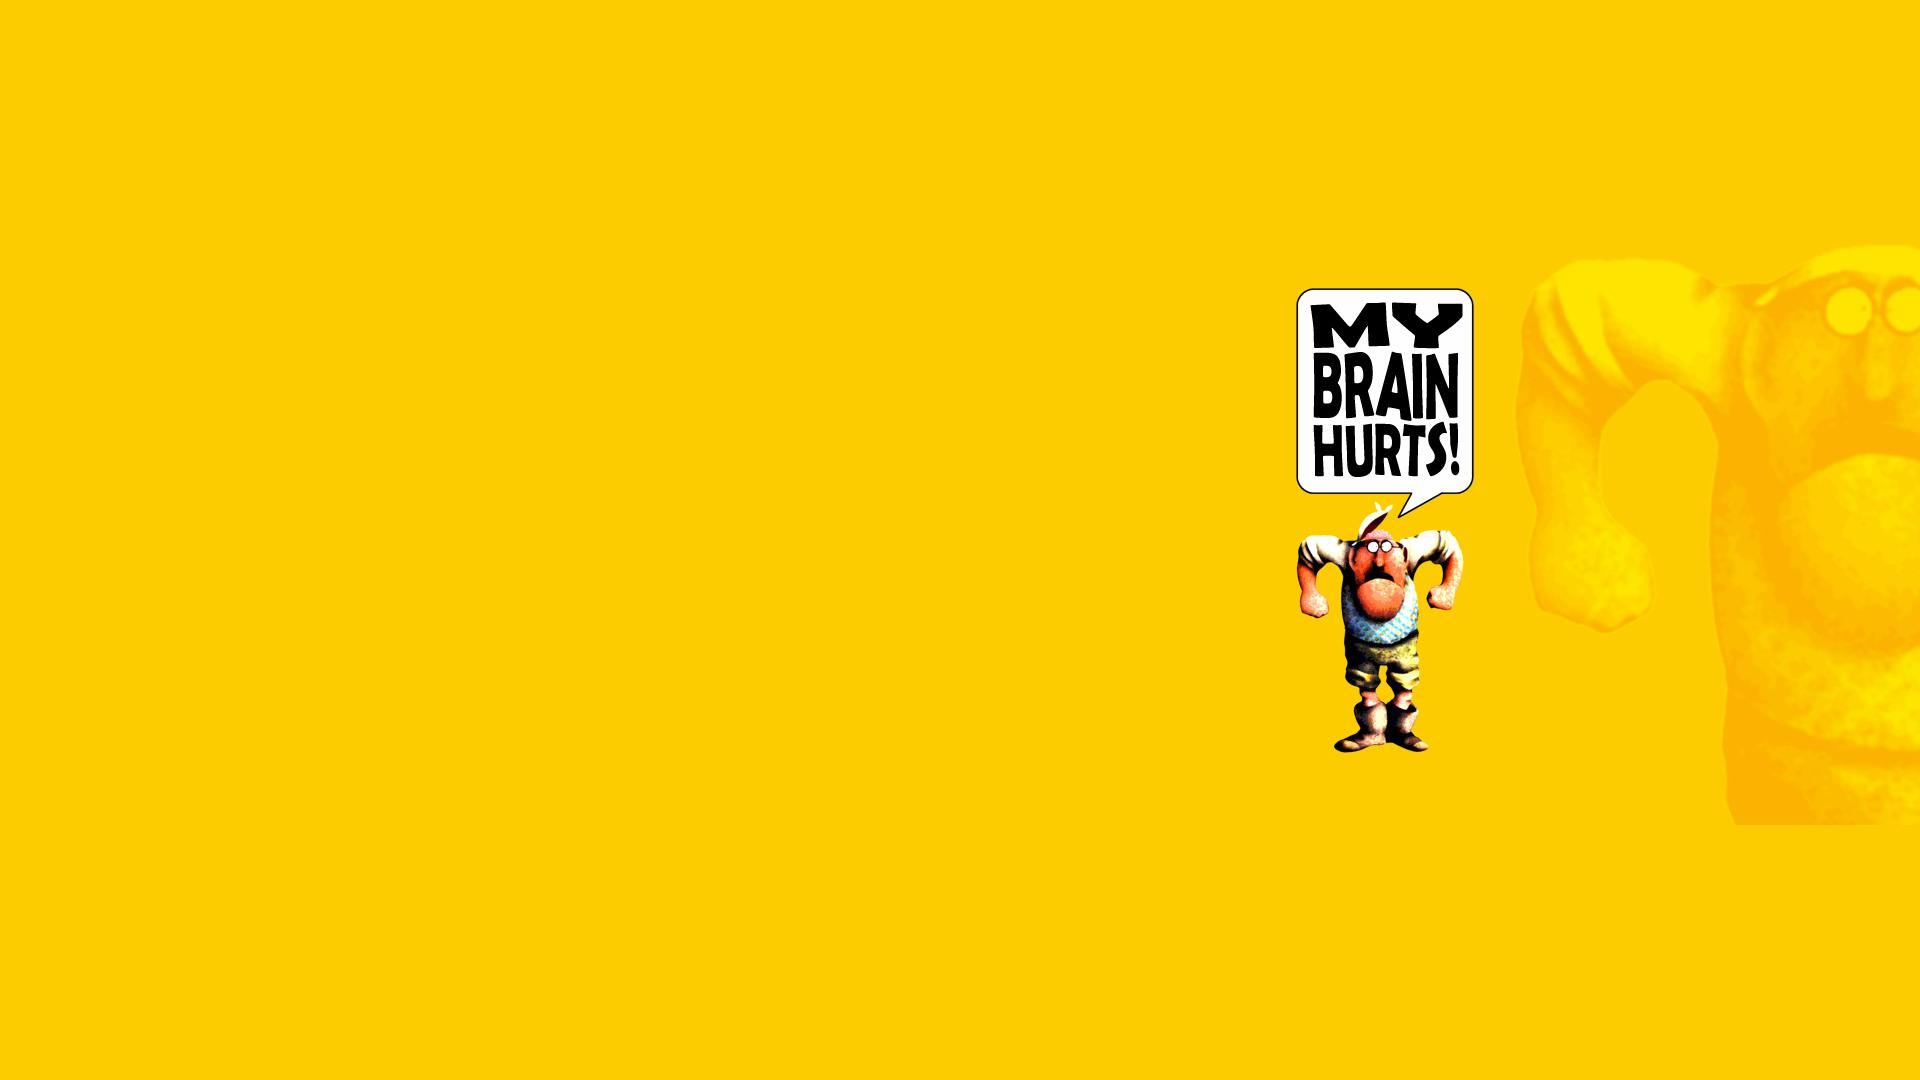 Monty Python Yellow cartoon humor movies text wallpaper ...